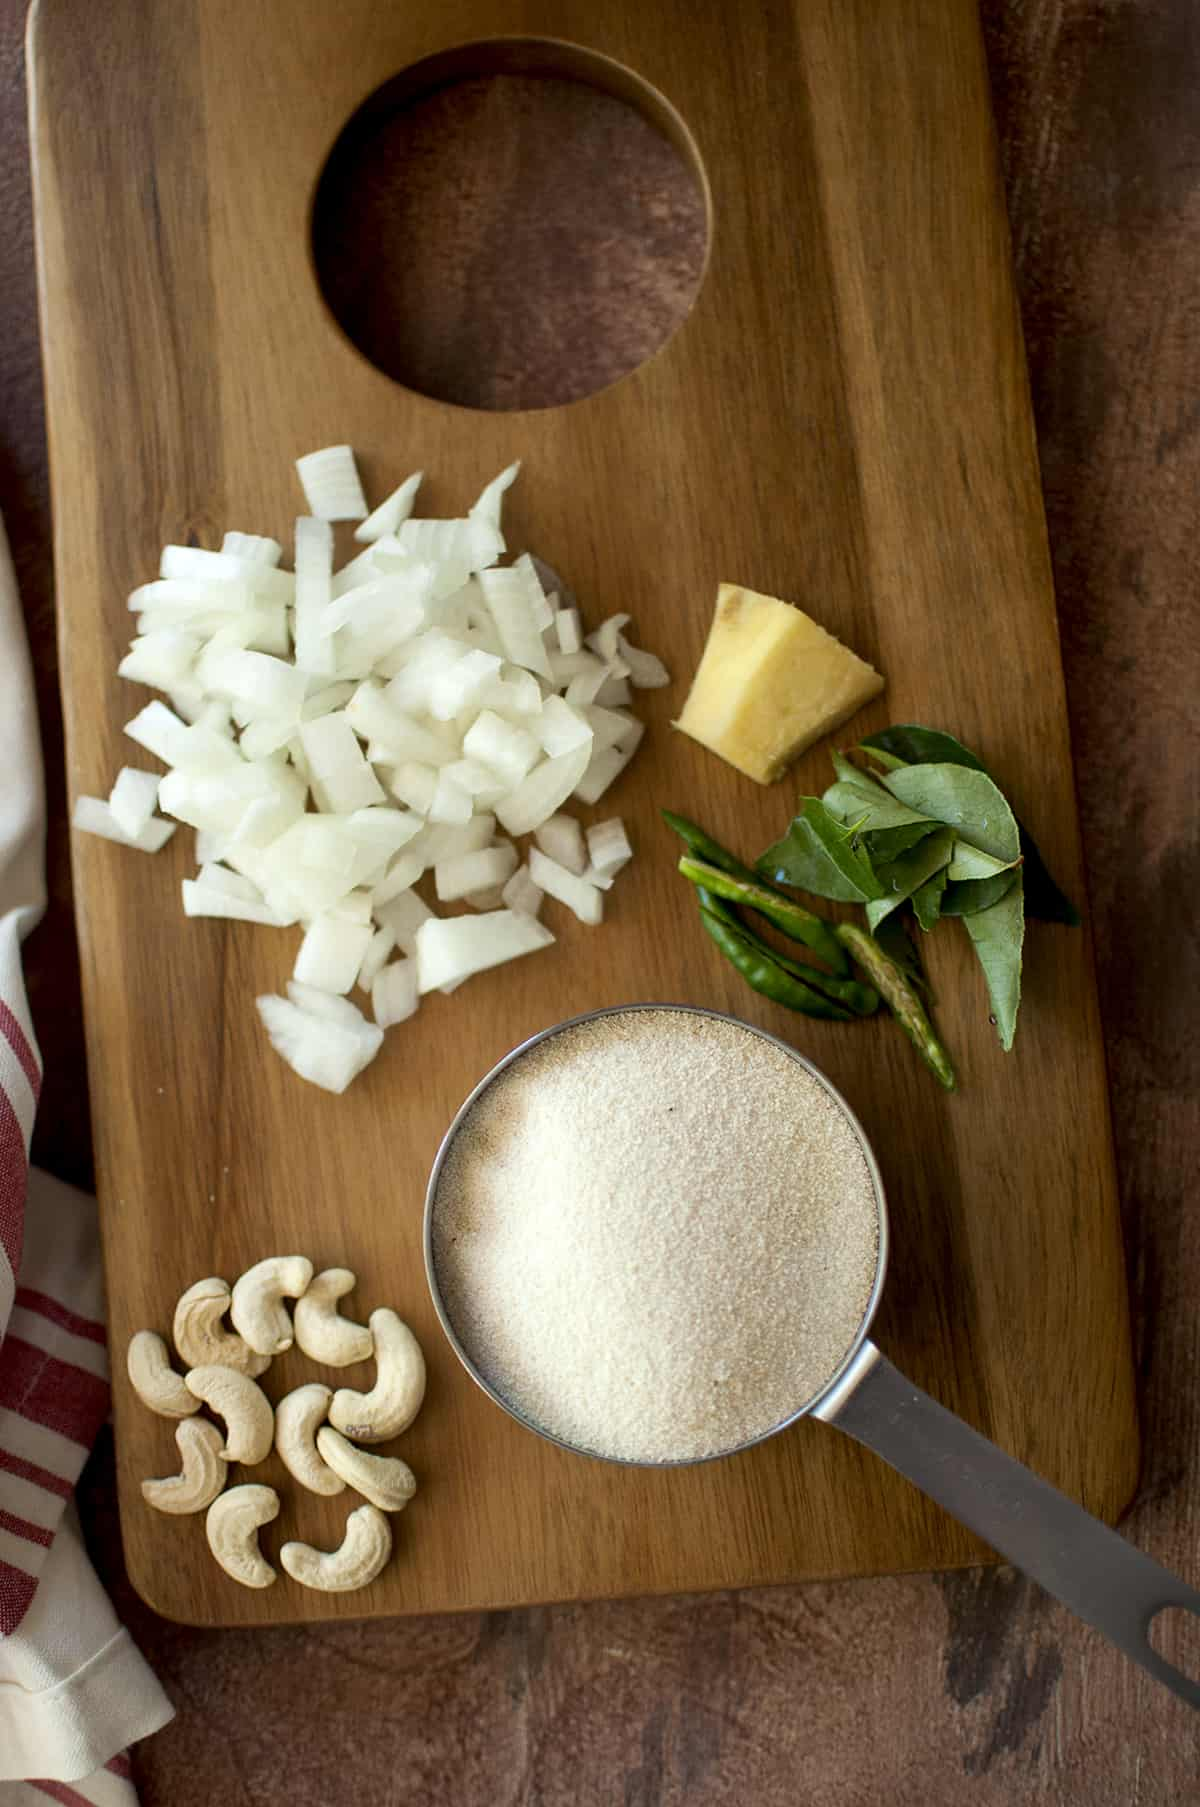 Ingredients for upma on a chopping board - sooji, cashews, chopped onions, ginger, green chilies and curry leaves